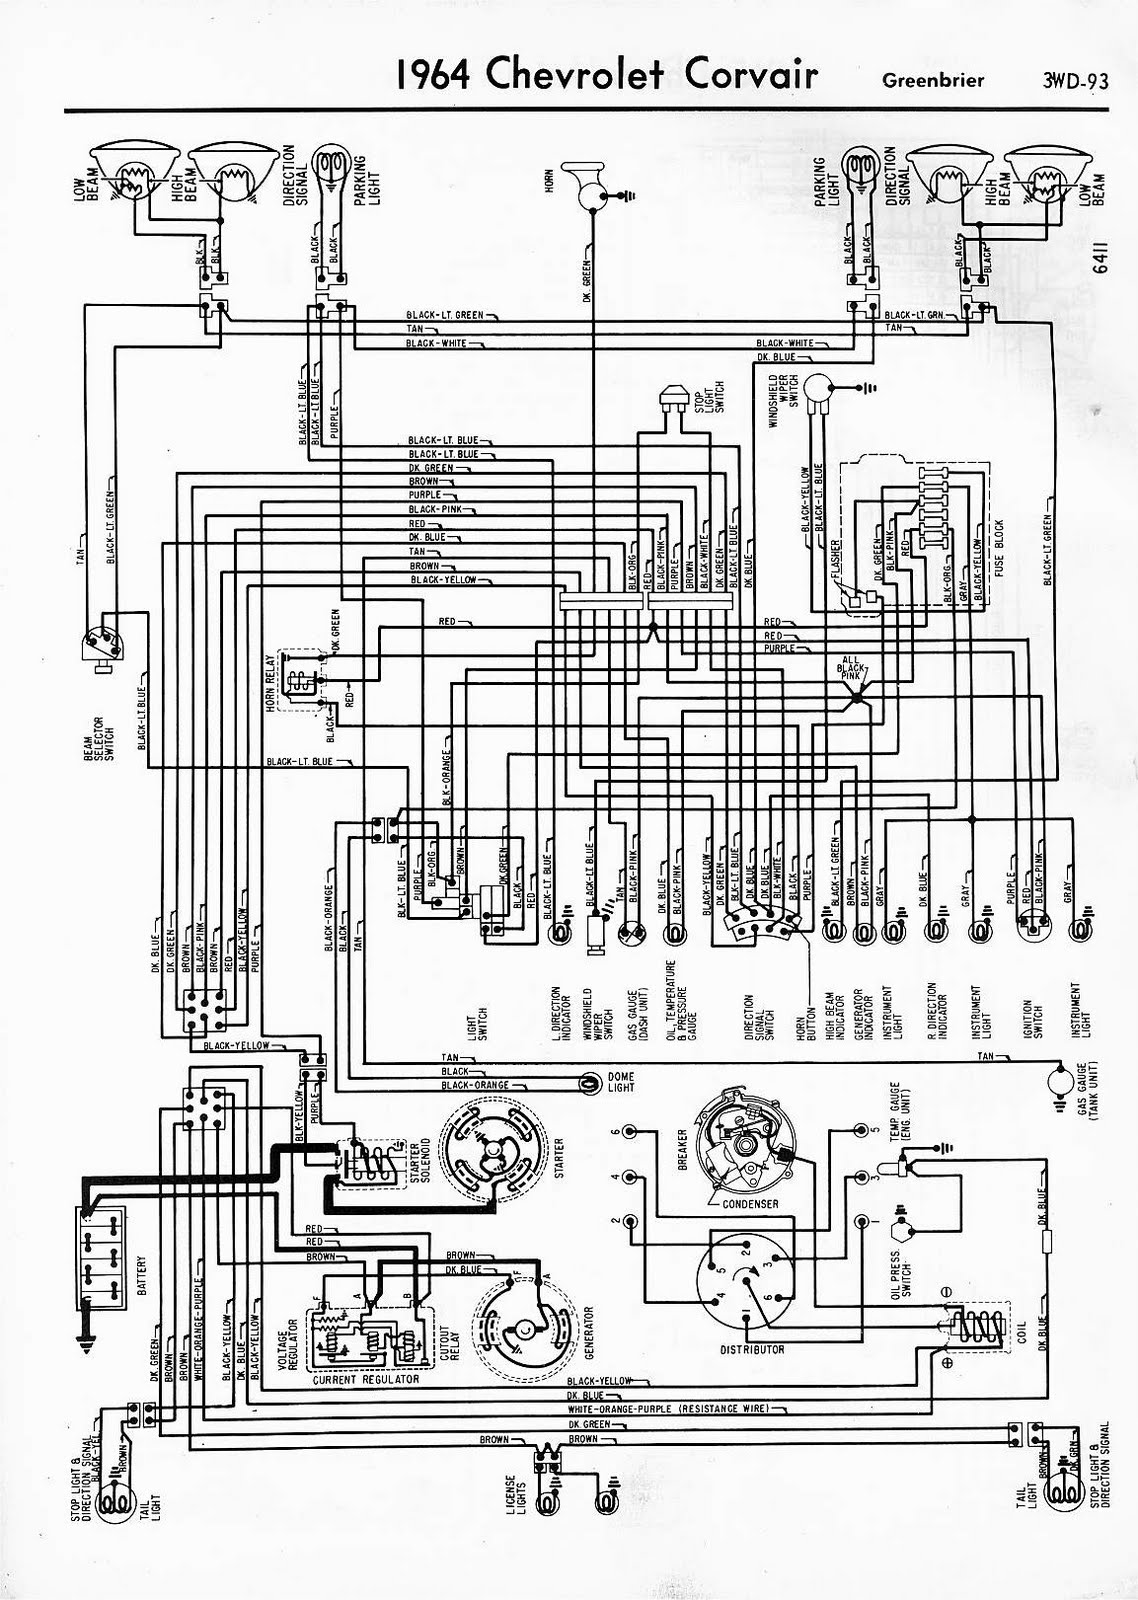 66 corvair wiring diagram wiring diagram centre 1966 corvair wiring diagram [ 1138 x 1600 Pixel ]